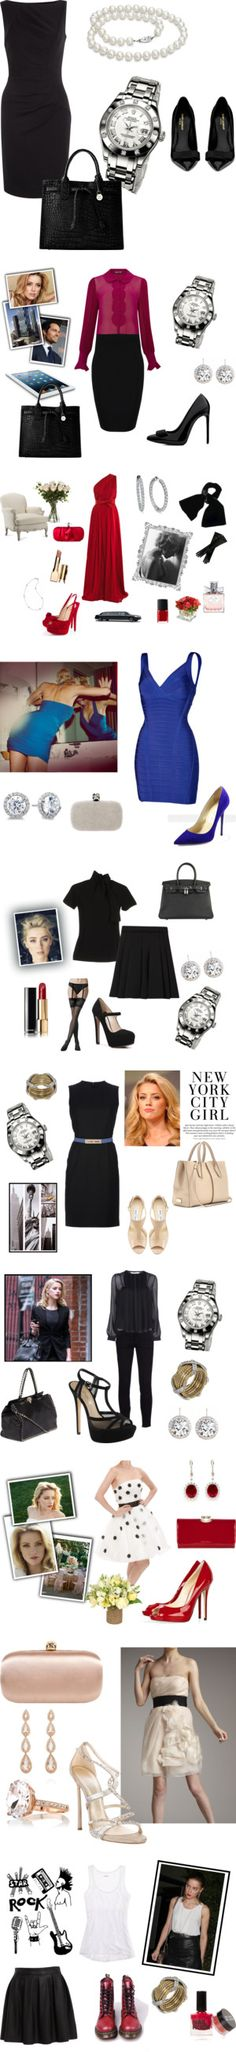 """Eva Tramell's closet - Bared to you (Crossfire Trilogy)"" by fiftycross on Polyvore"